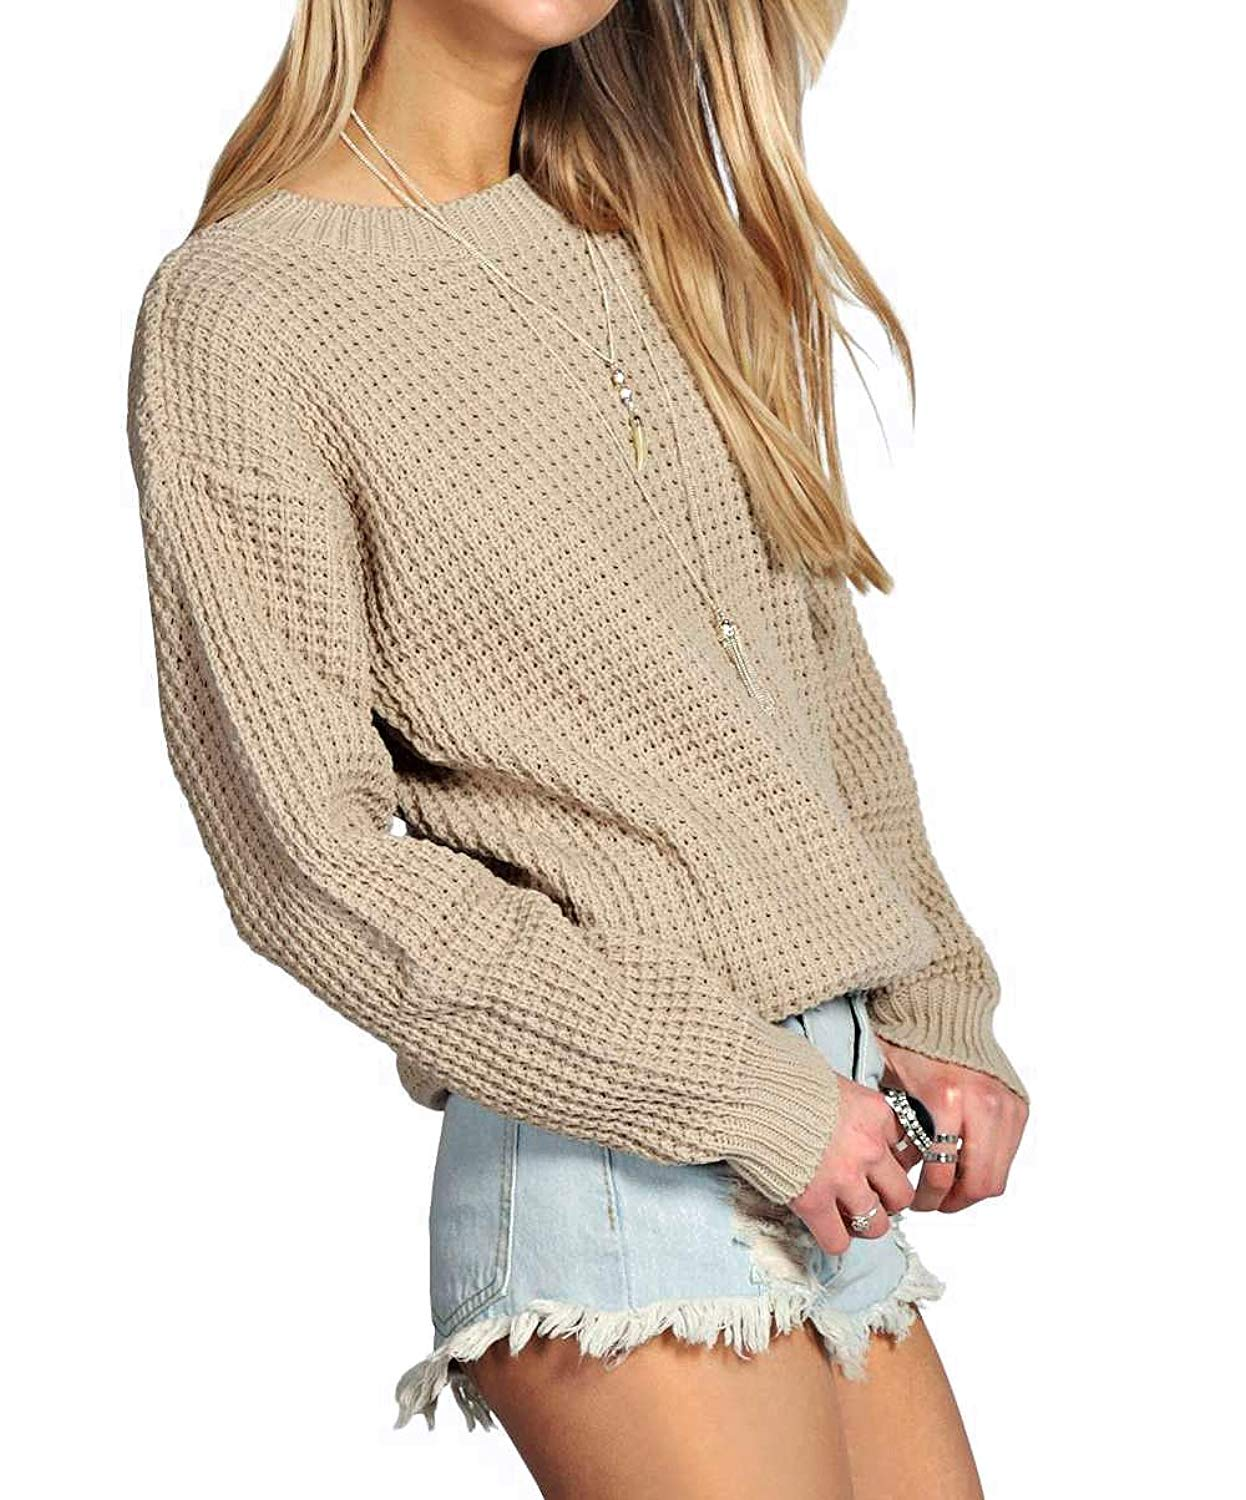 f923dd2a5 Buy Ladies New Plain Chunky Knit Loose Baggy Oversized Jumper Tops ...